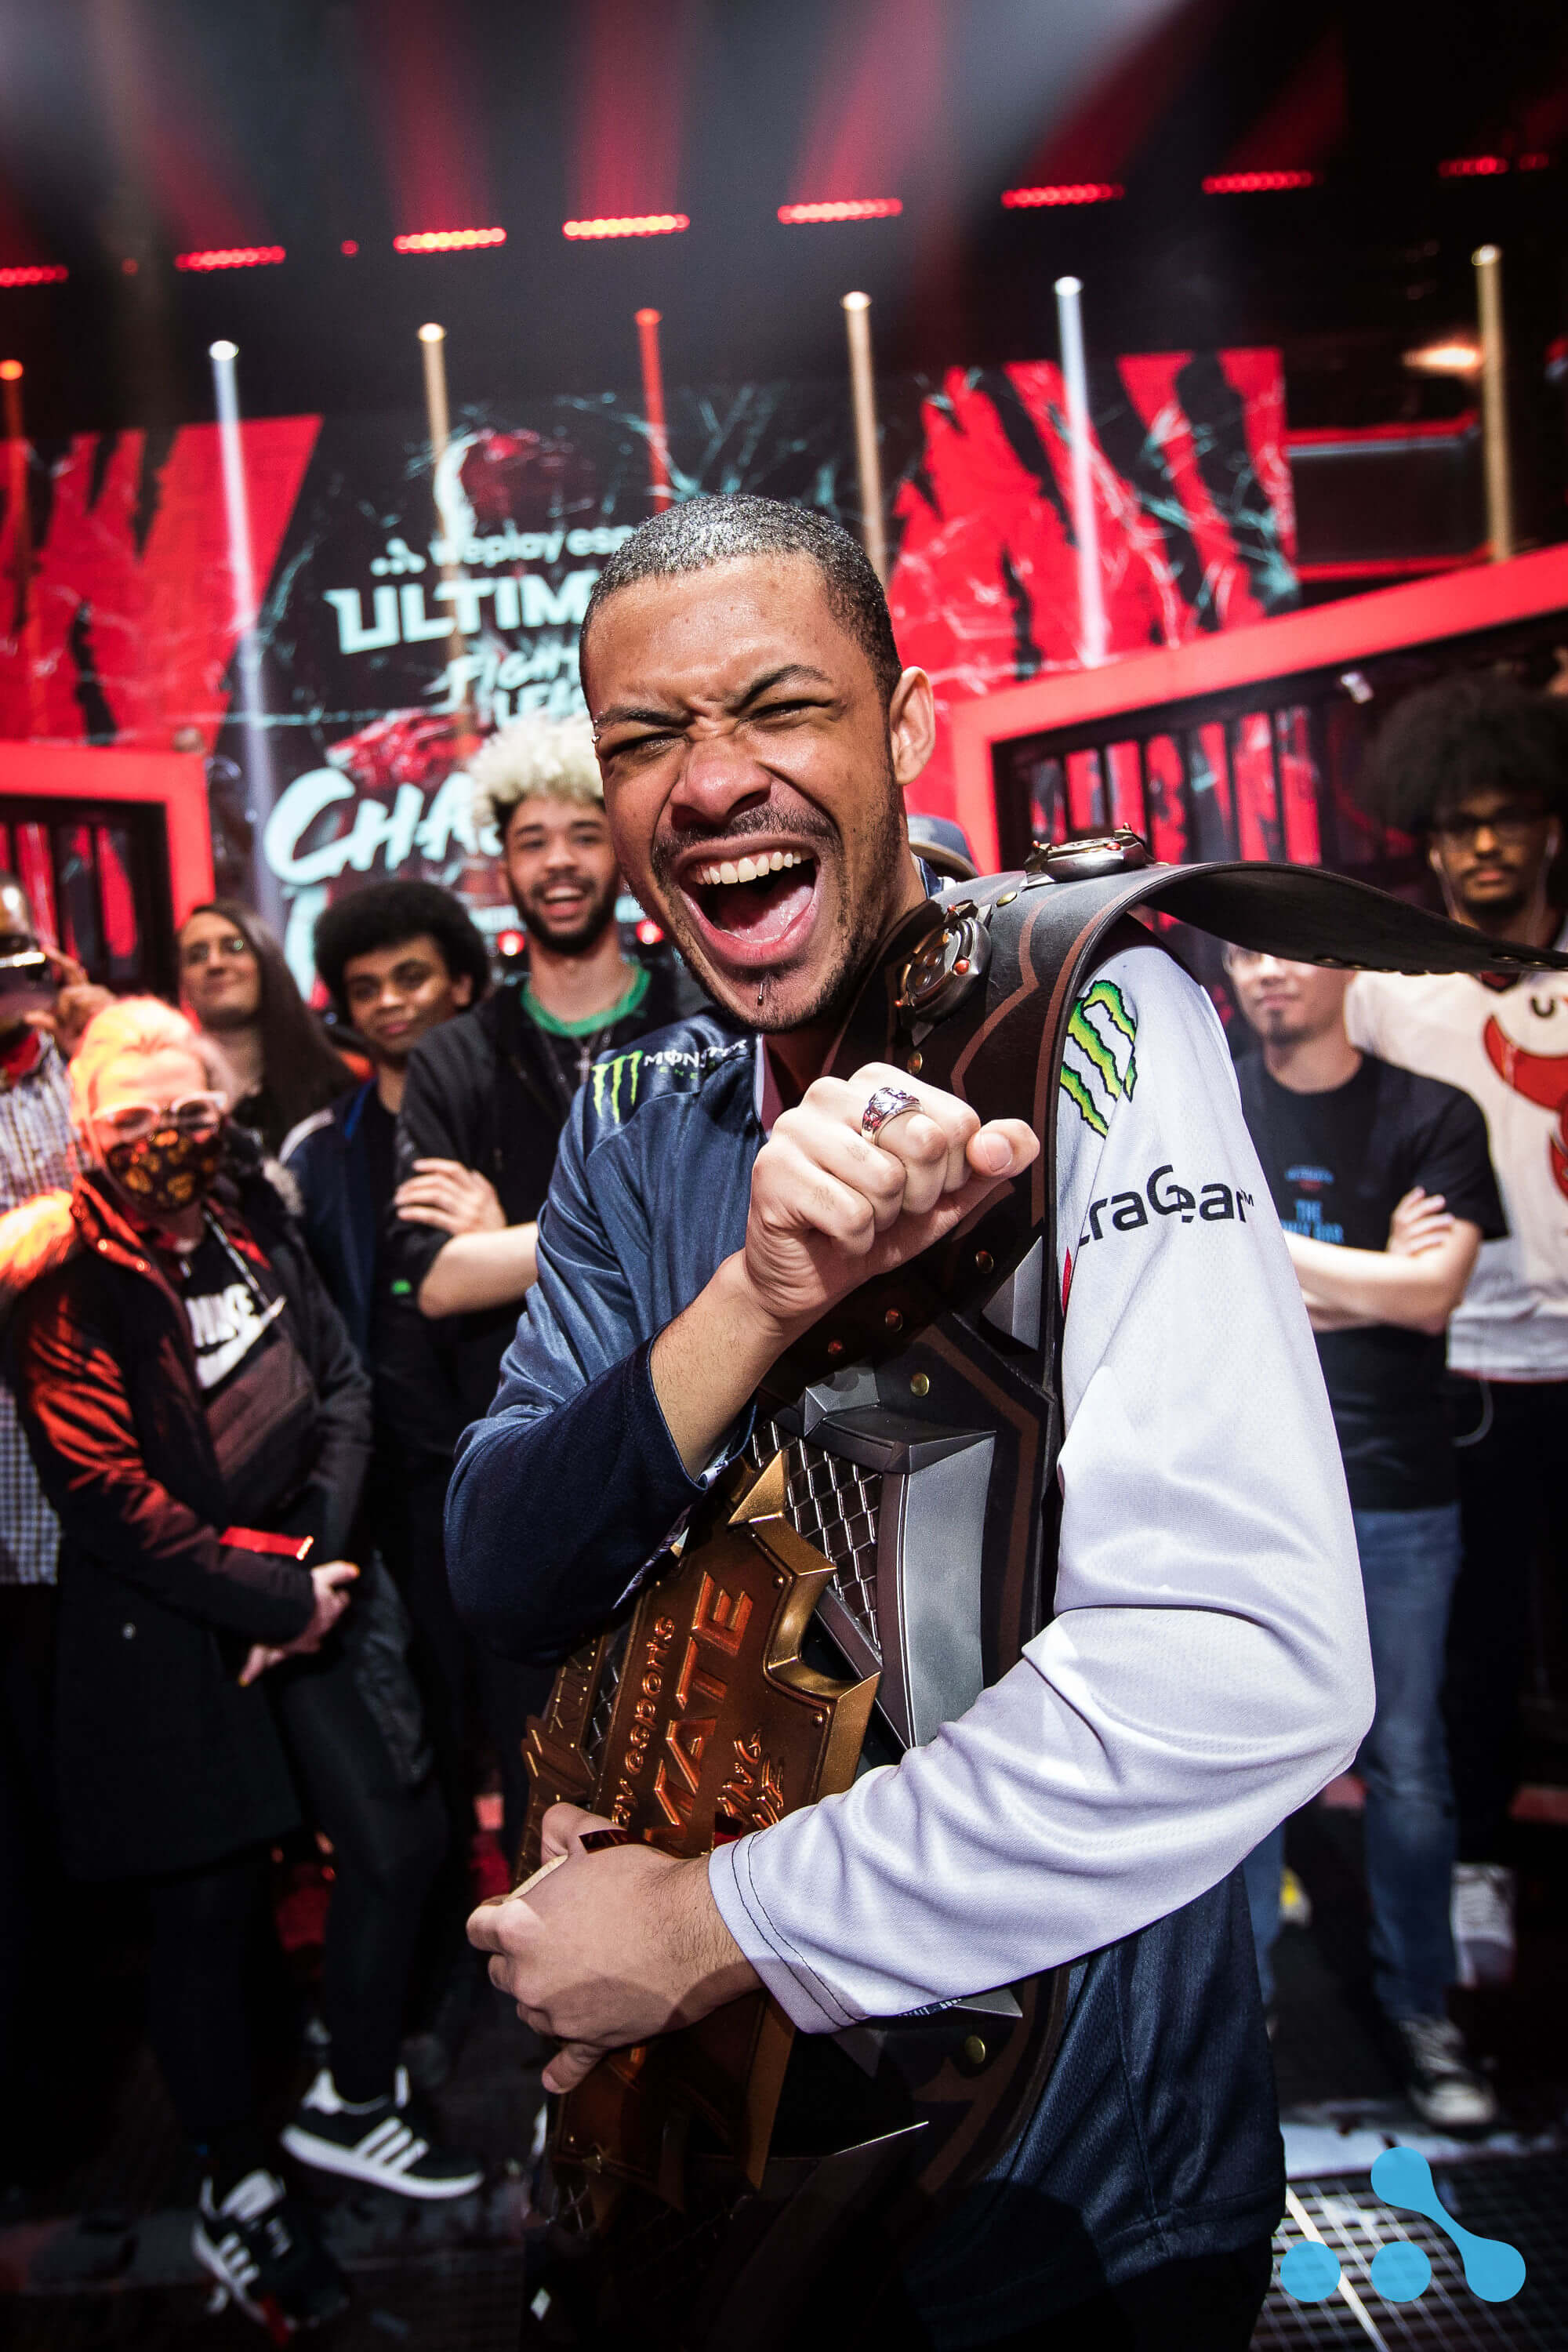 SonicFox revels in victory